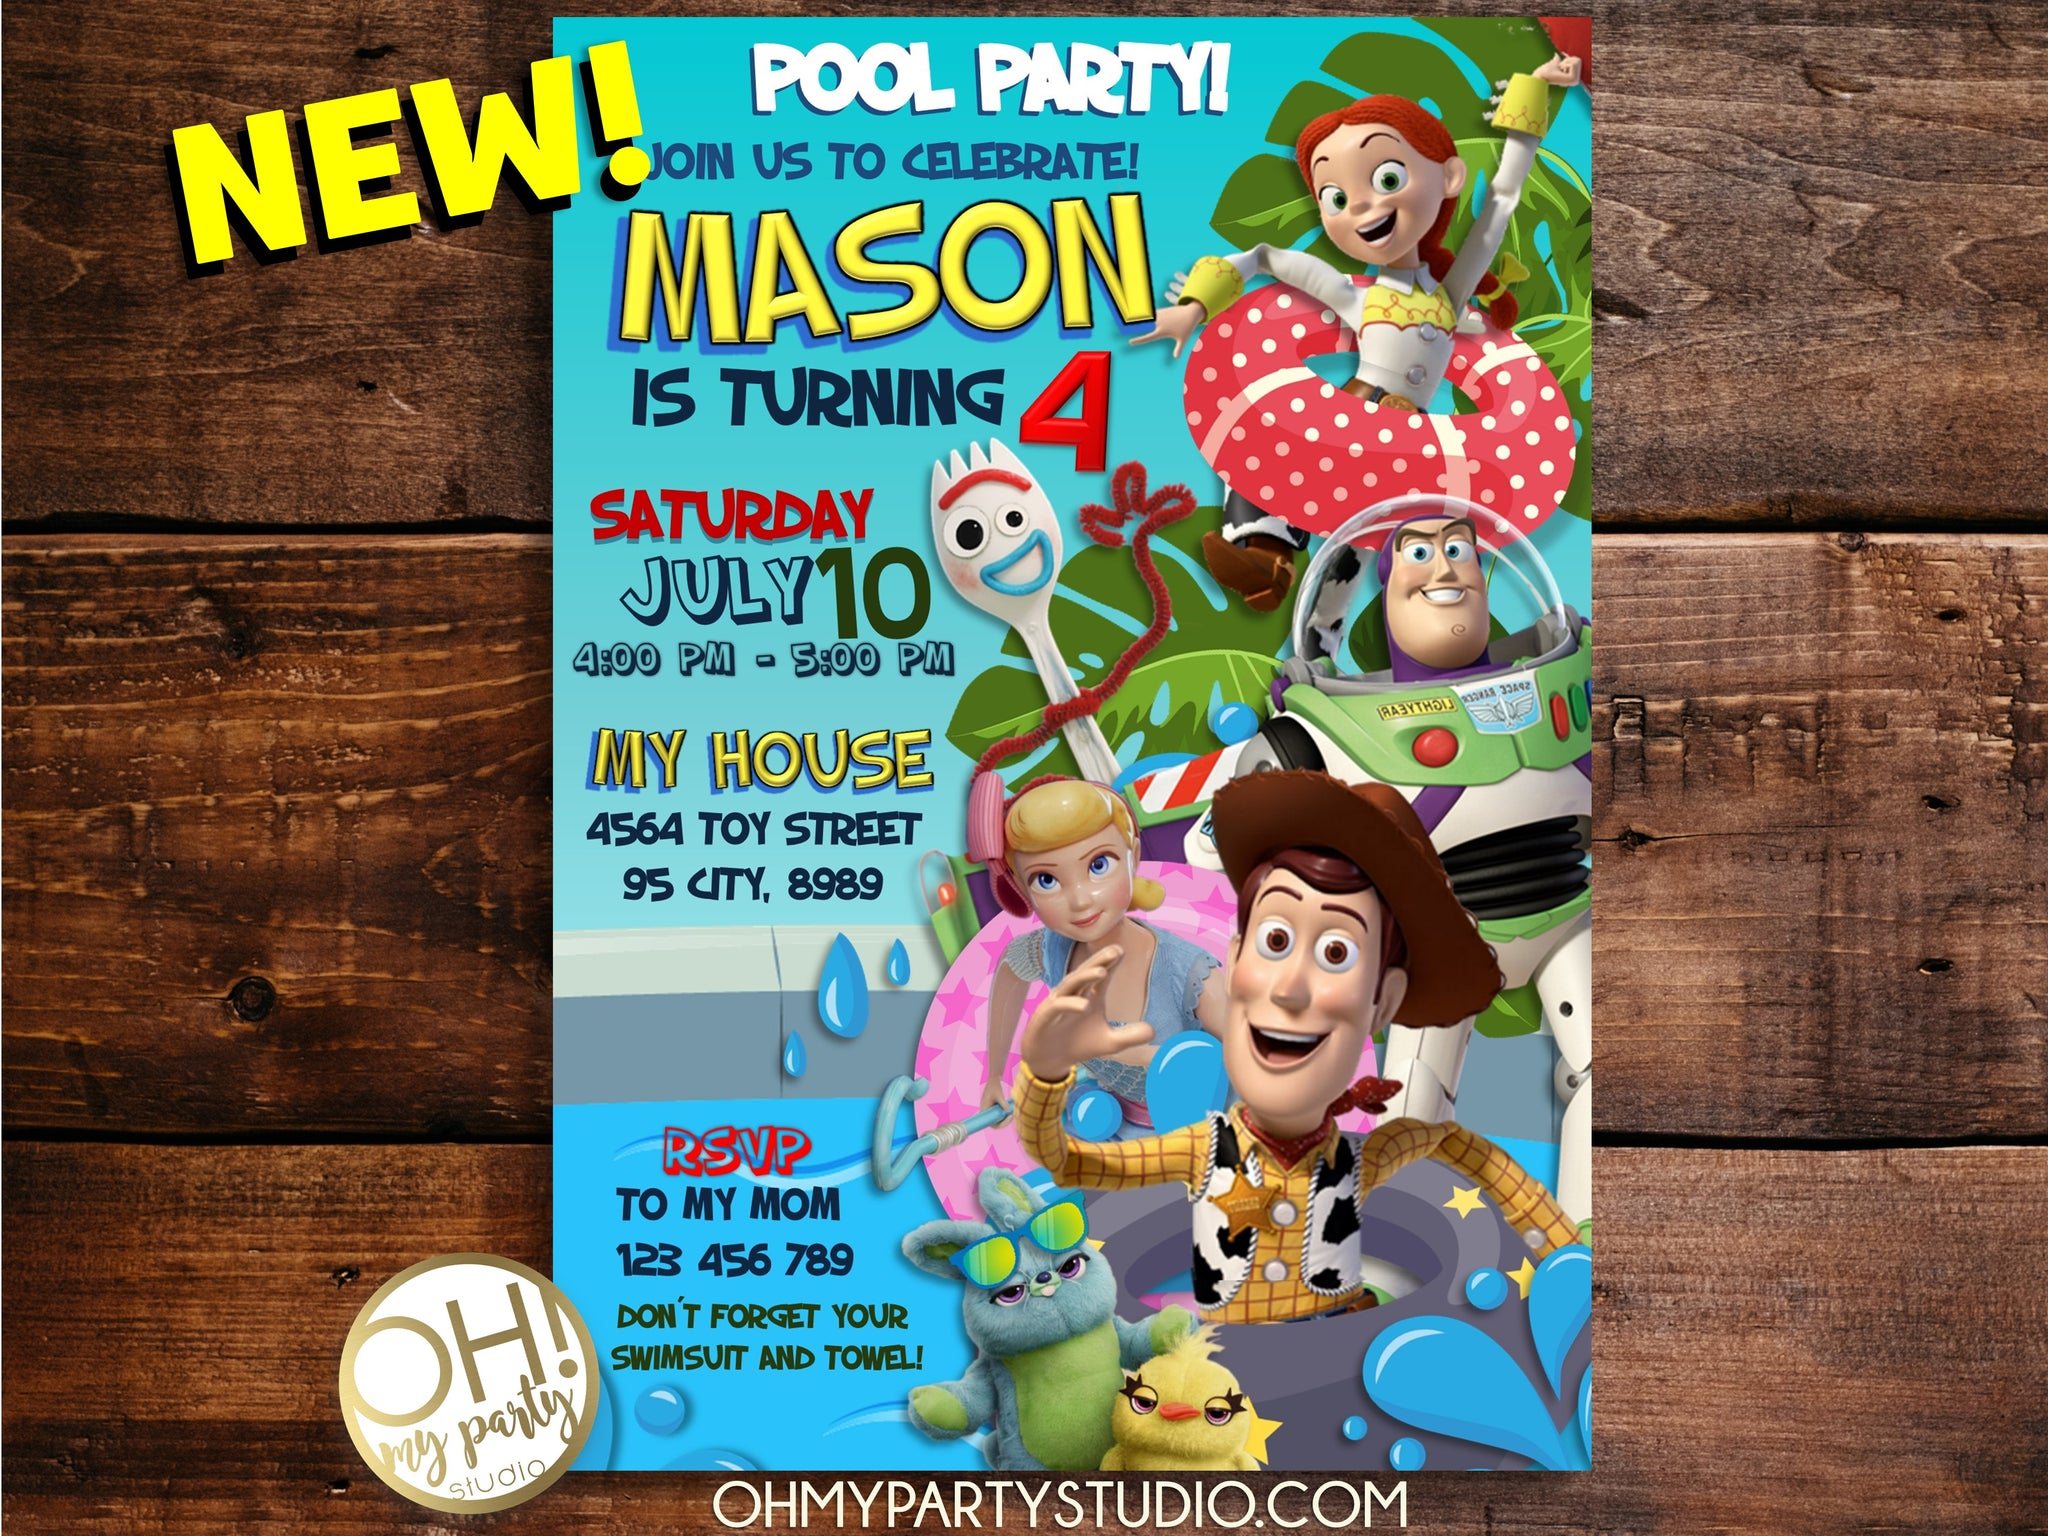 TOY STORY 4 POOL PARTY INVITATIONS, TOY STORY PARTY IDEAS, TOY STORY 4 BIRTHDAY PARTY, TOY STORY 4 POOL PARTY, TOY STORY 4 POOL PARTY INVITATION, TOY STORY 4 BIRTHDAY PARTY INVITATION, TOY STORY 4 INVITE , TOY STORY 4 INVITATIONS, TOY STORY 4 PARTY, TOY STORY 4 CARD, TOY STORY 4 BIRTHDAY, FORKY INVITATION, FORKY INVITATIONS, FORKY PRINTABLES, FORKY PARTY, FORKY BIRTHDAY, FORKY INVITATIONS